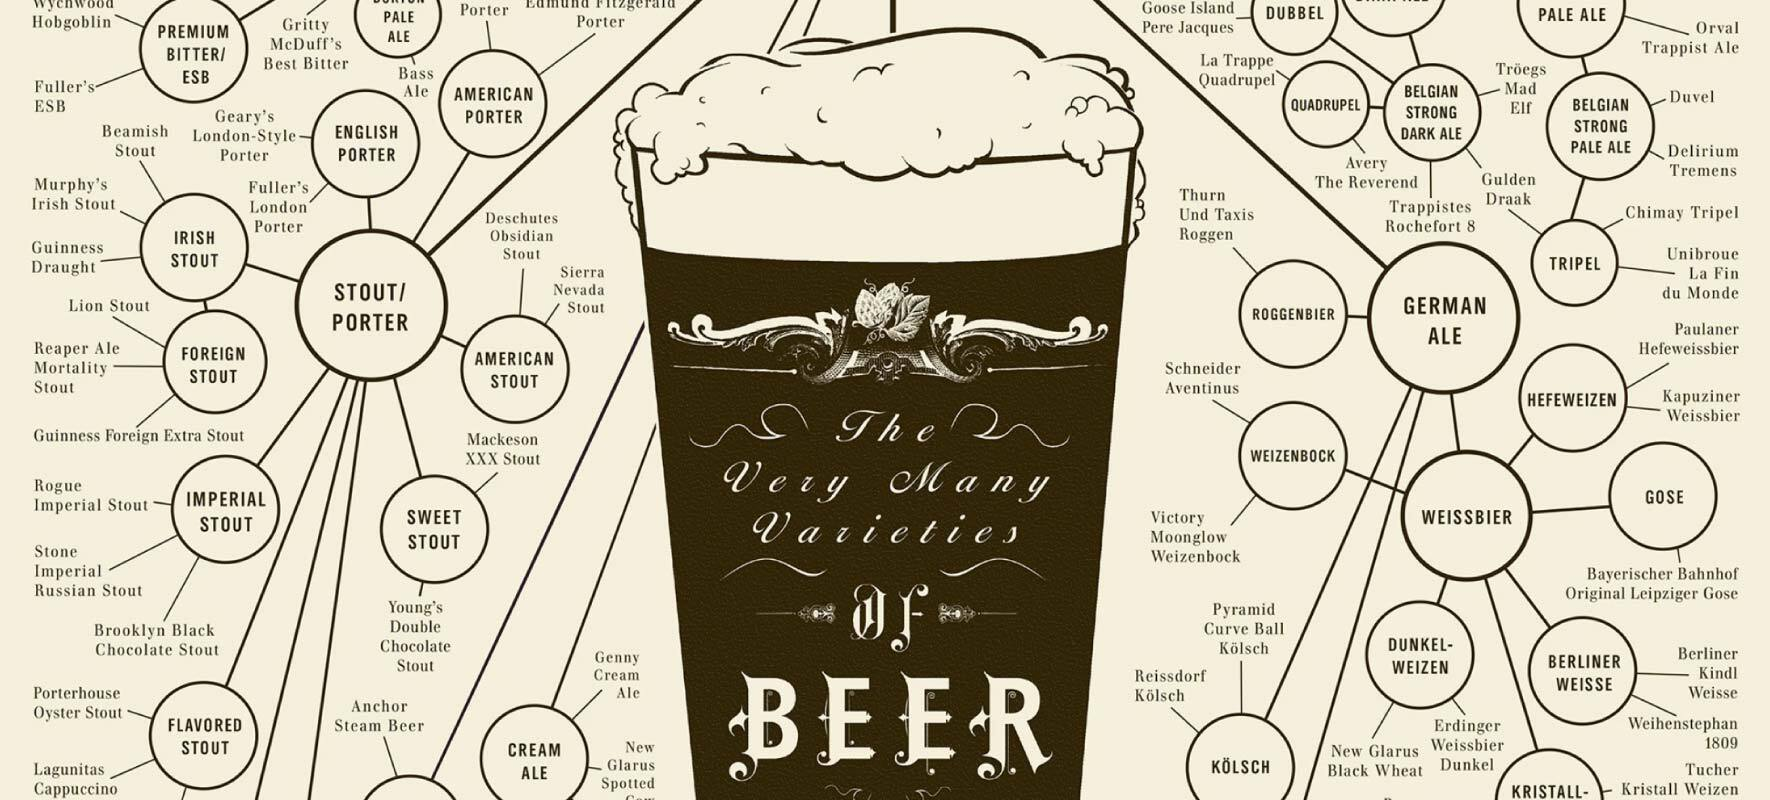 Infographic Examples The Many Varieties of Beer